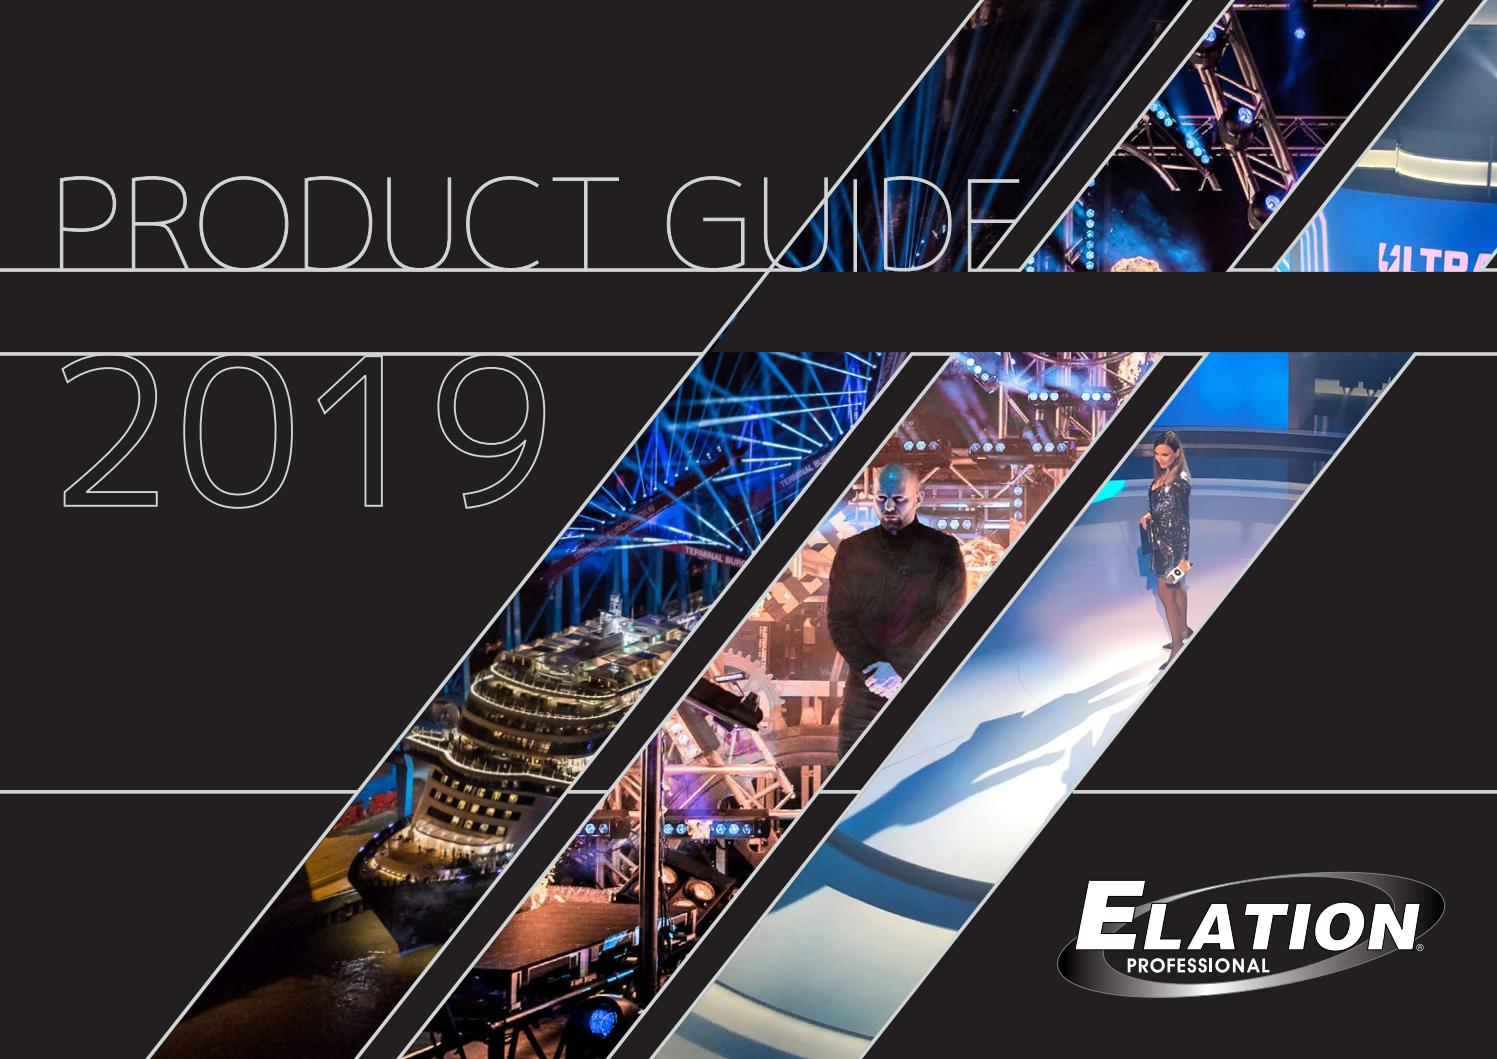 Elation Professional Product Guide 2019 By A D J Group Issuu